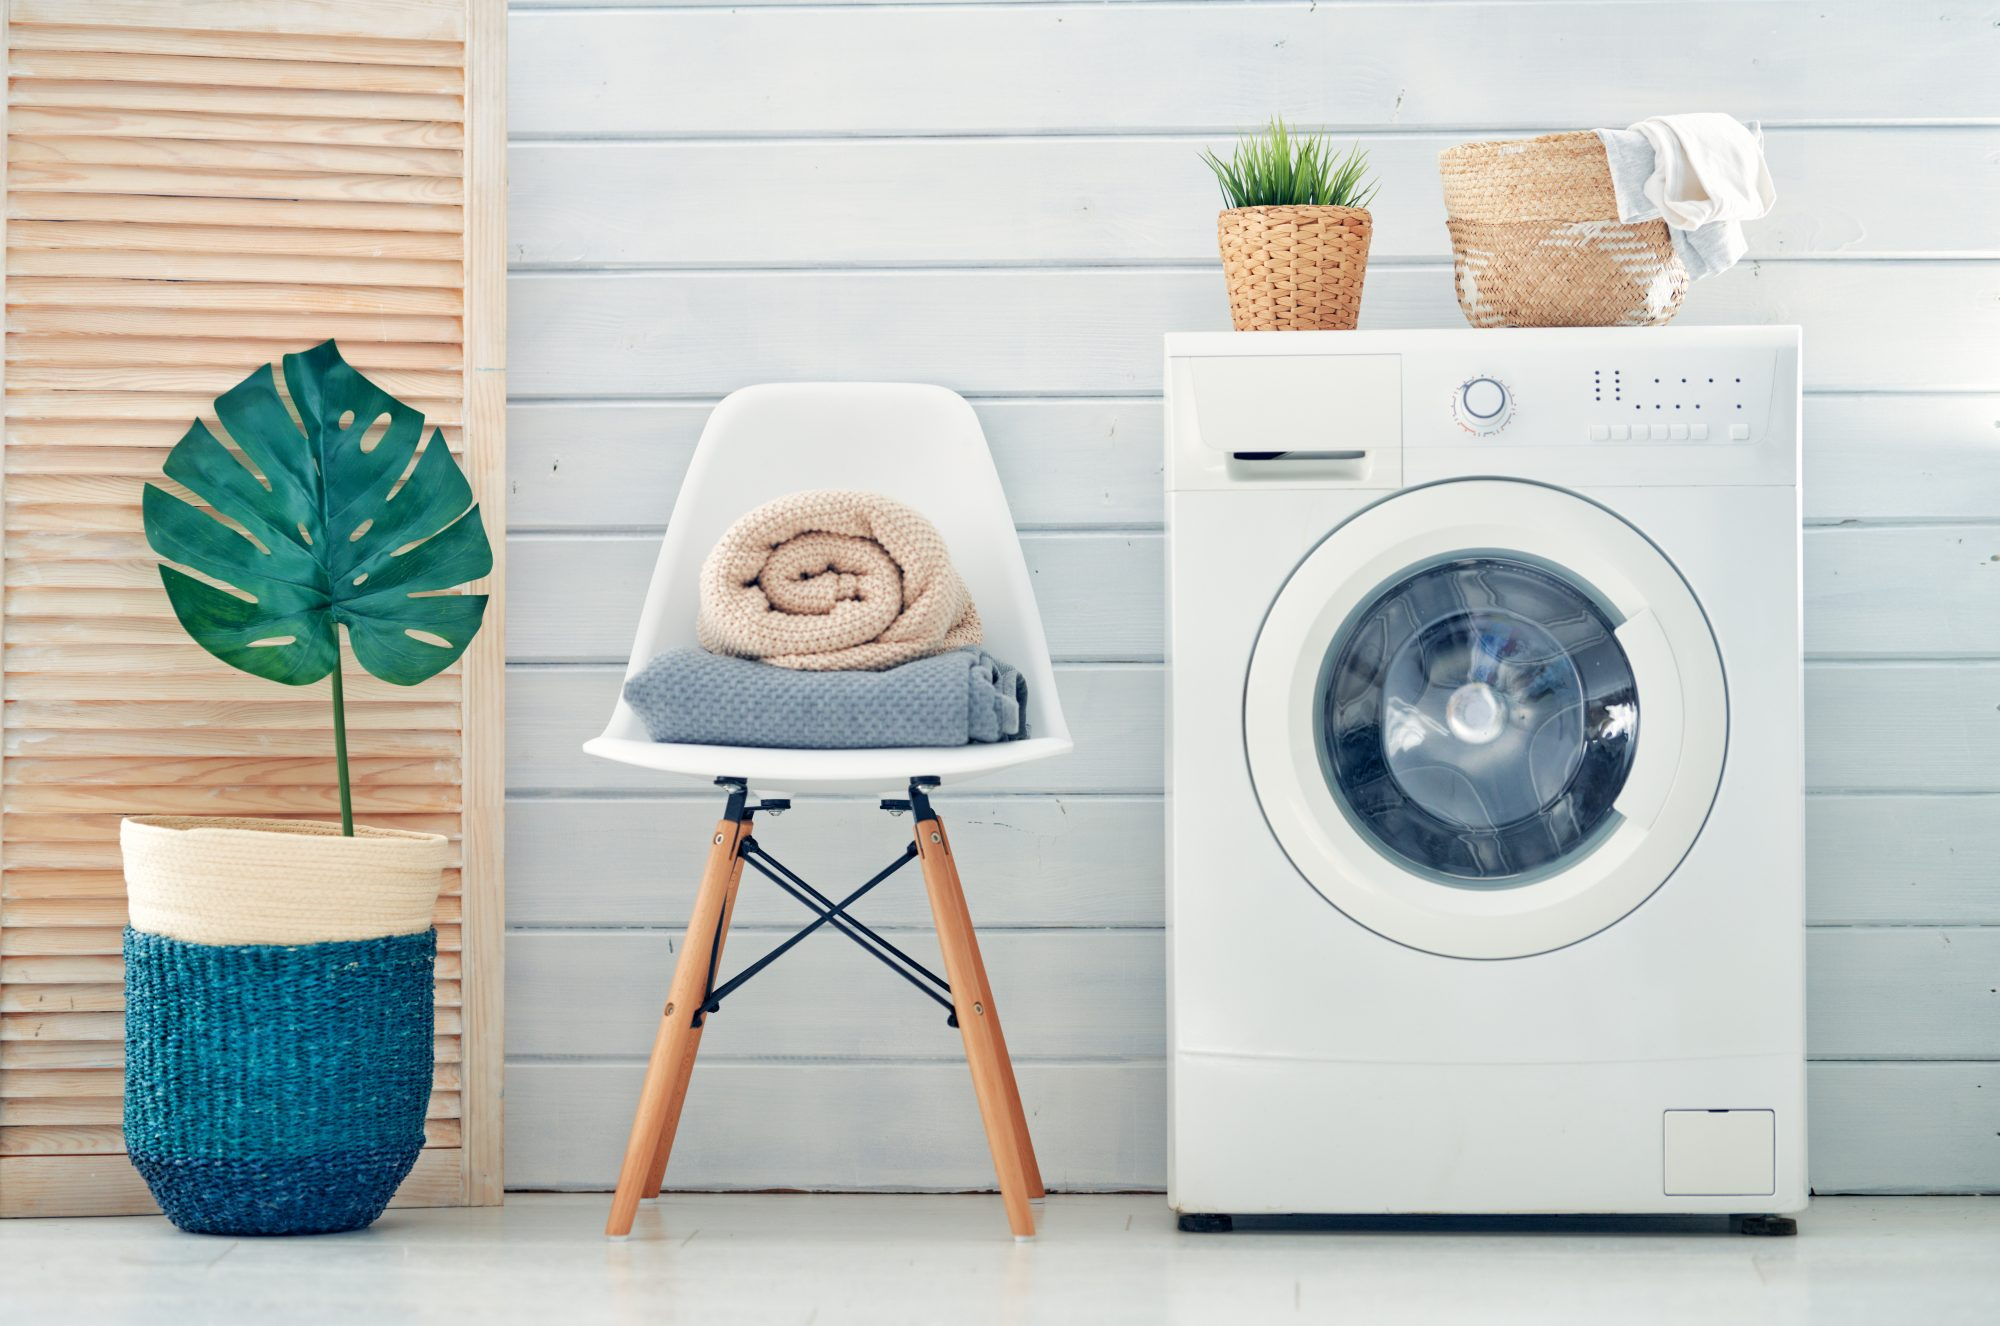 washing machine and plant in laundry room